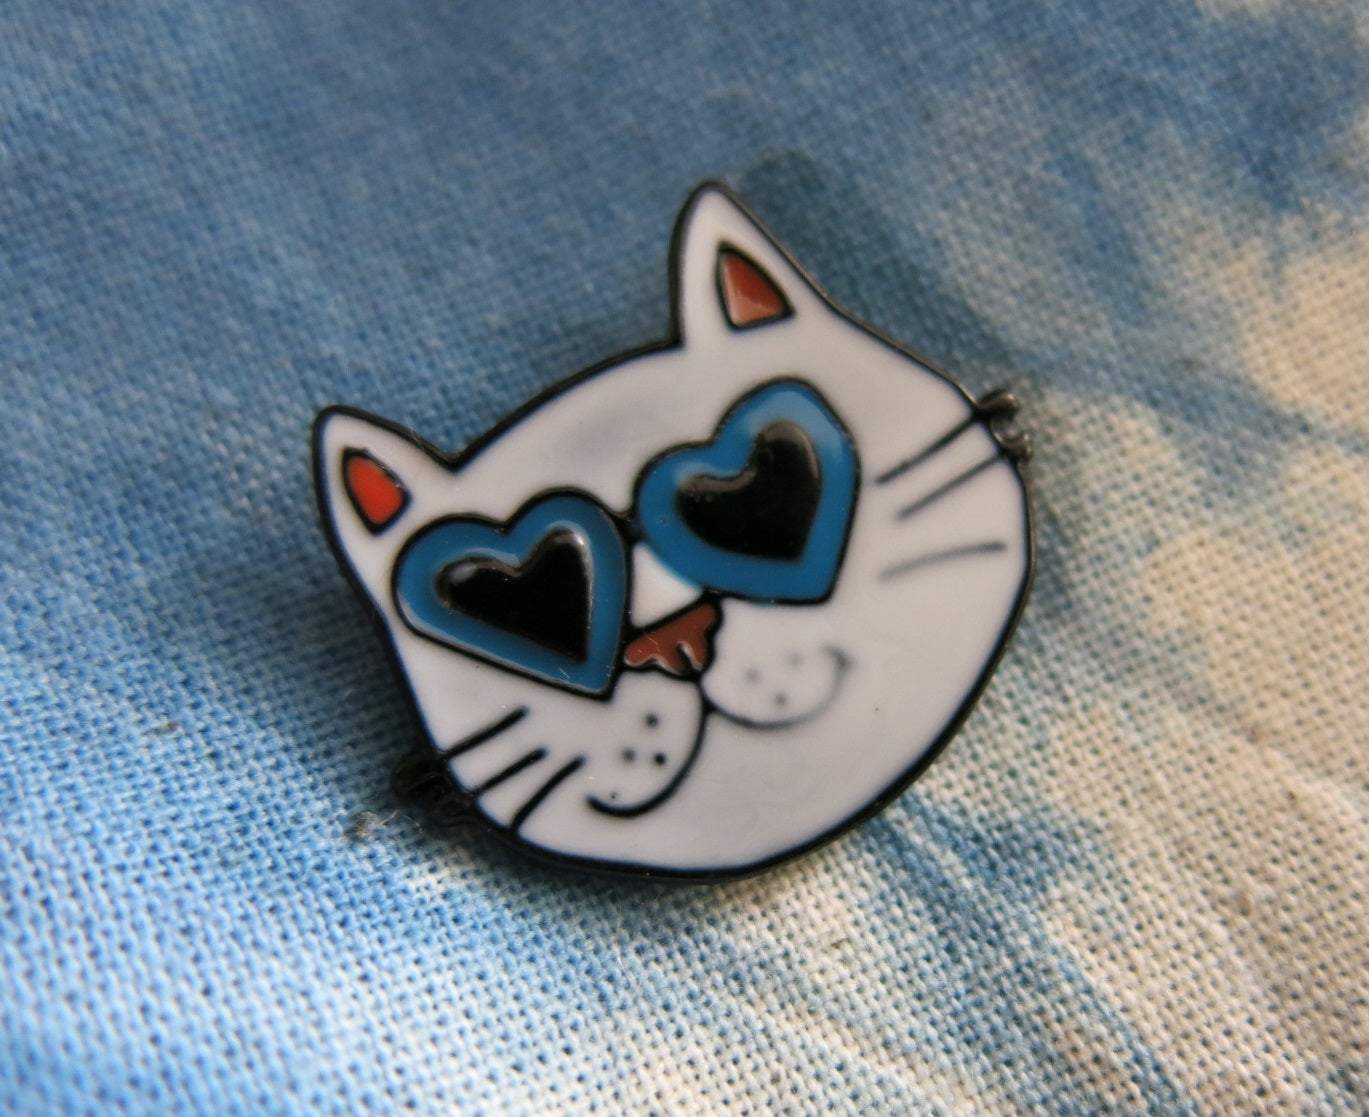 white cat face with love heart eyes lapel pin for bags and shirts